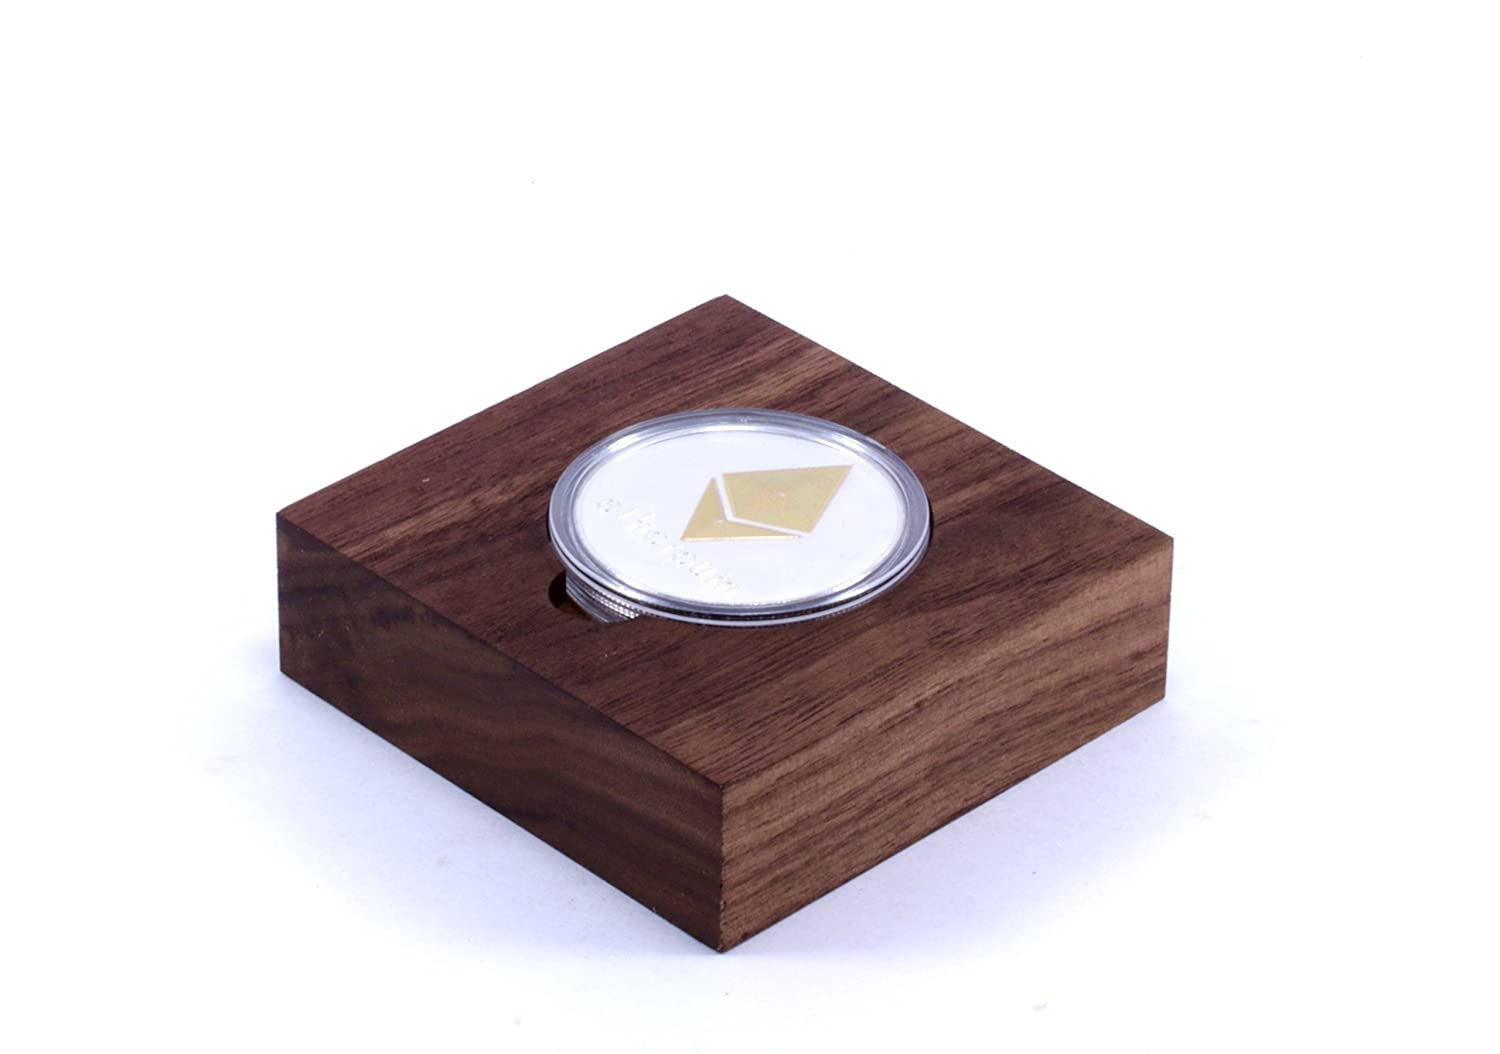 Ethereum Coin with Walnut Display